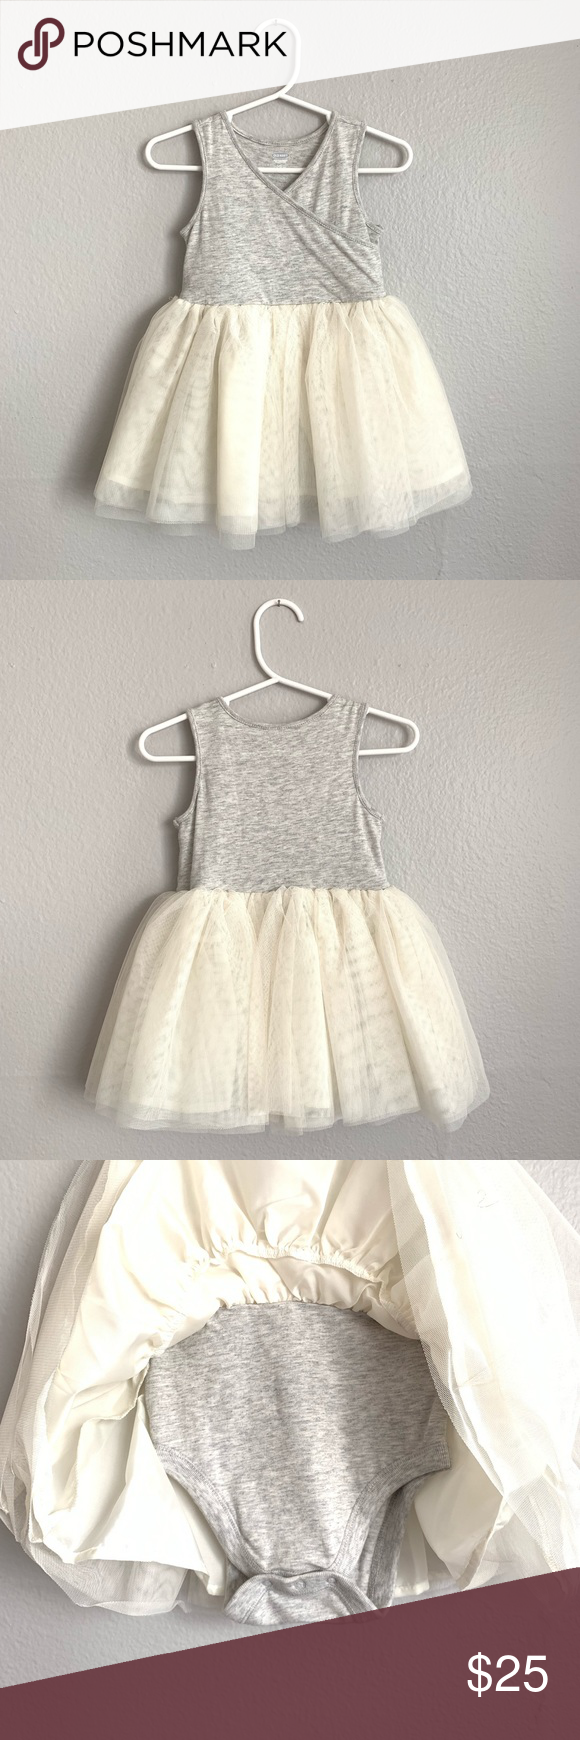 Old Navy Baby Girl Dress In Soft Tulle Tutu NWT Baby